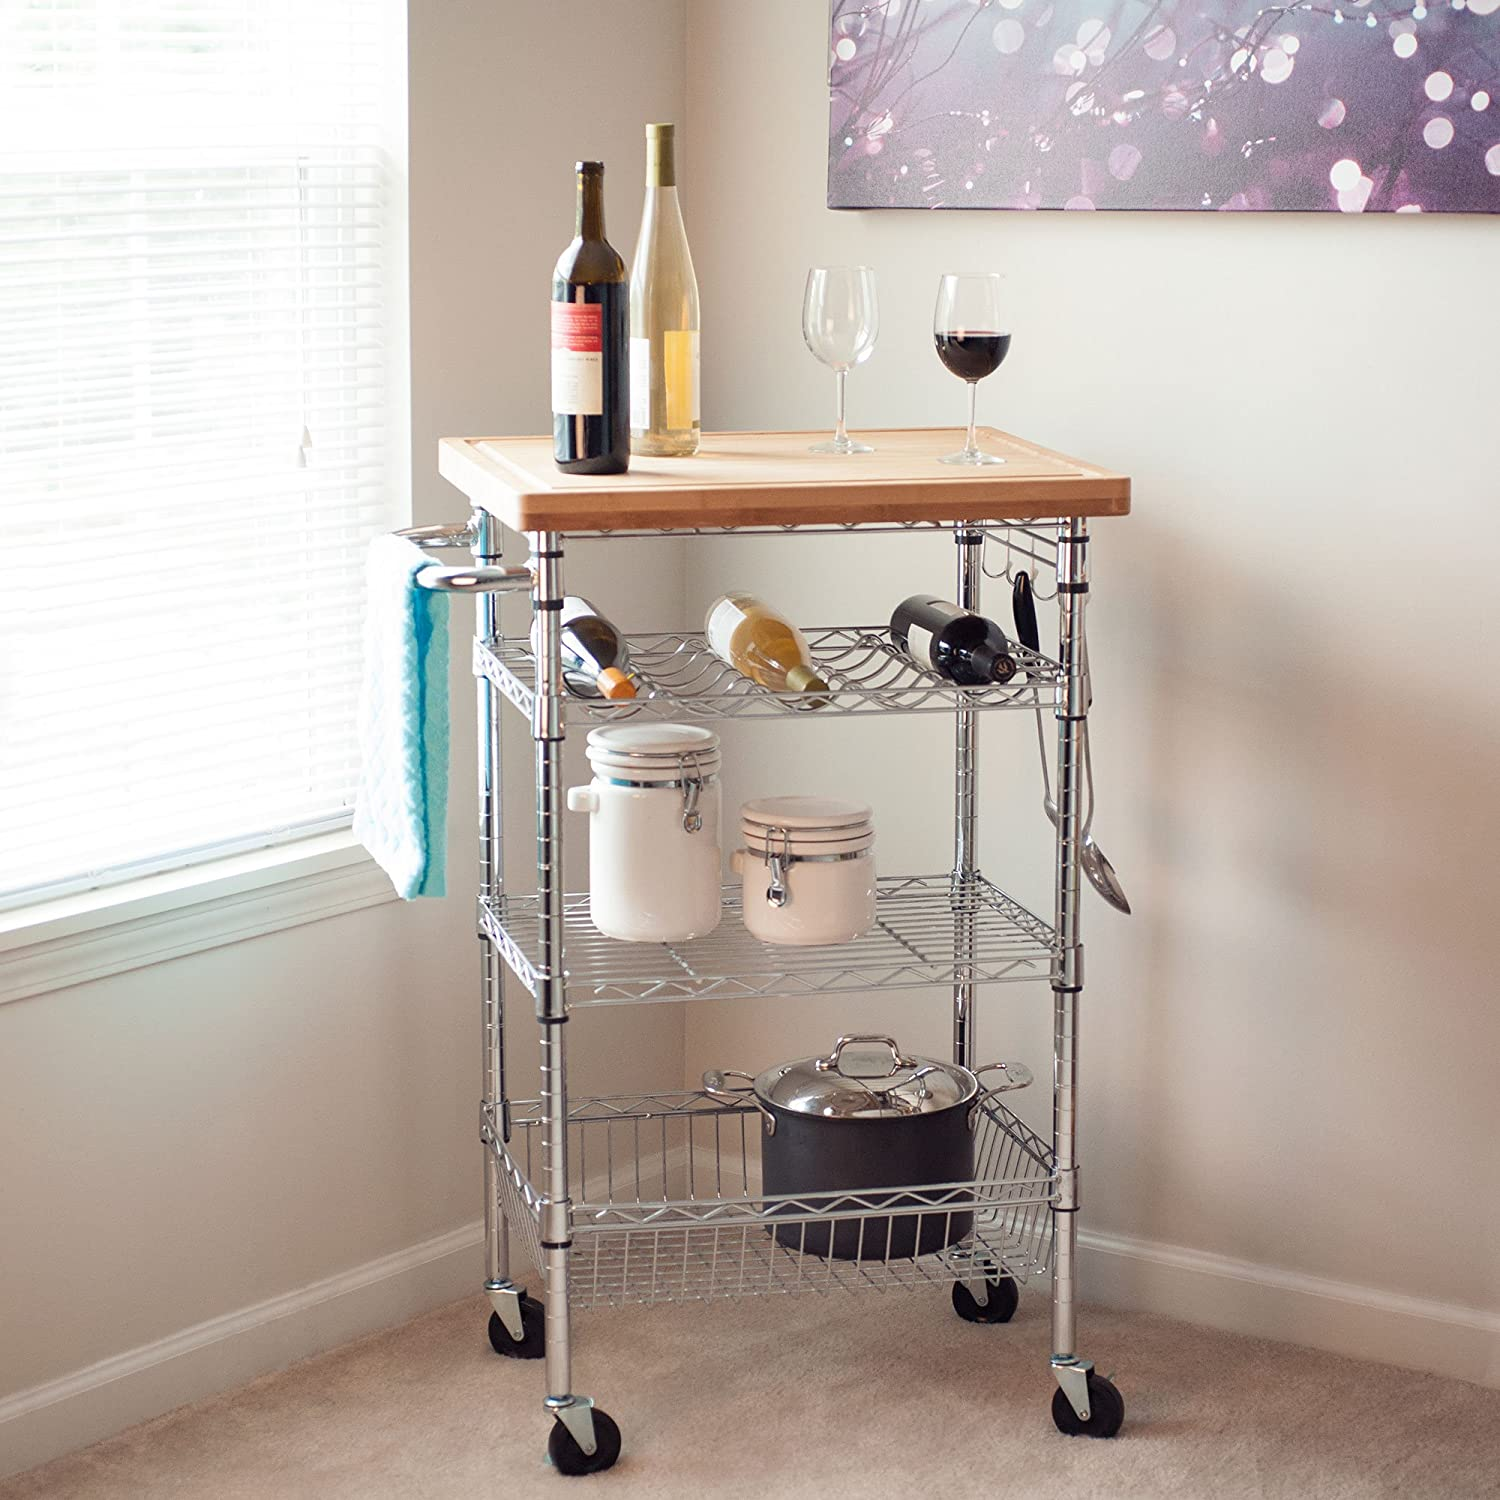 Amazon Lavish Home Chrome Wine Dining Cart with Butcher Block